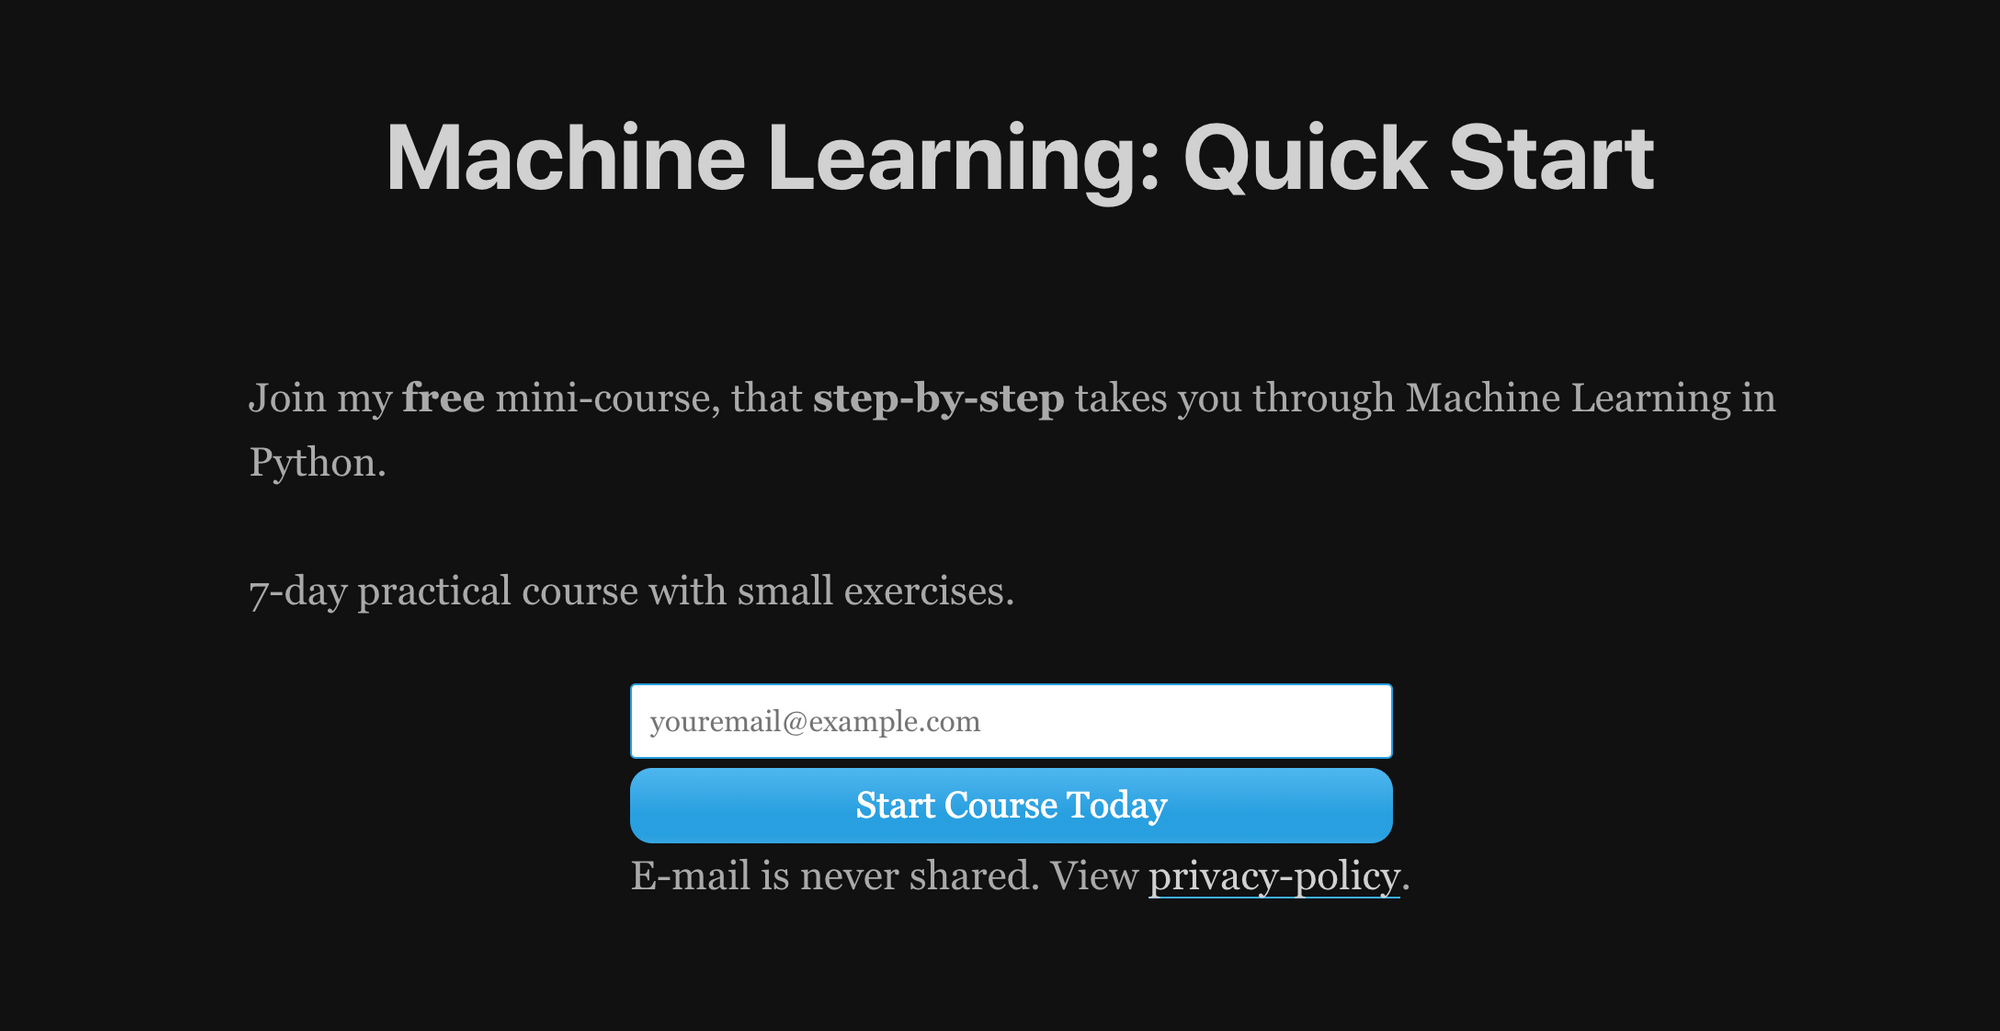 Machine Learning: Quick Start